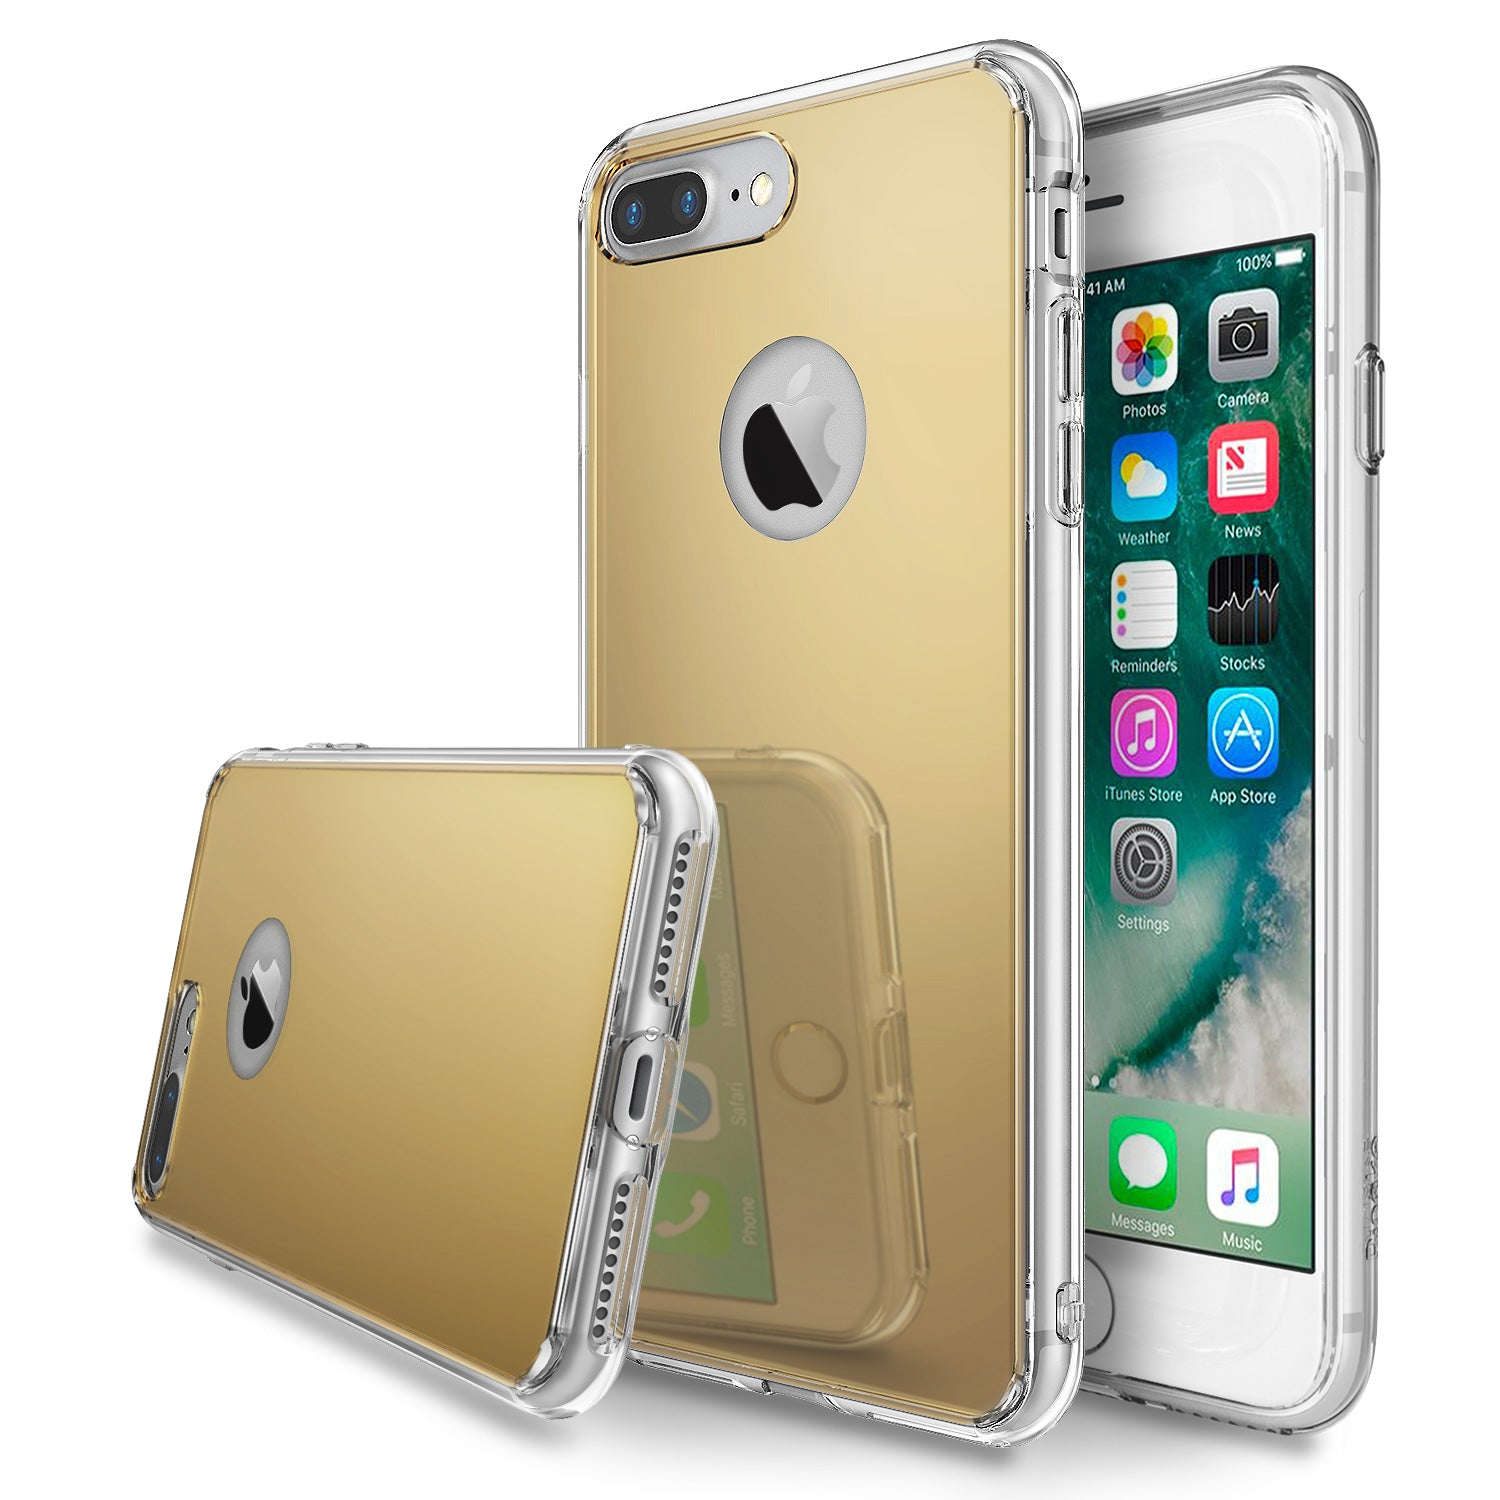 ringke mirror back case cover for iphone 7 plus 8 plus main royal gold